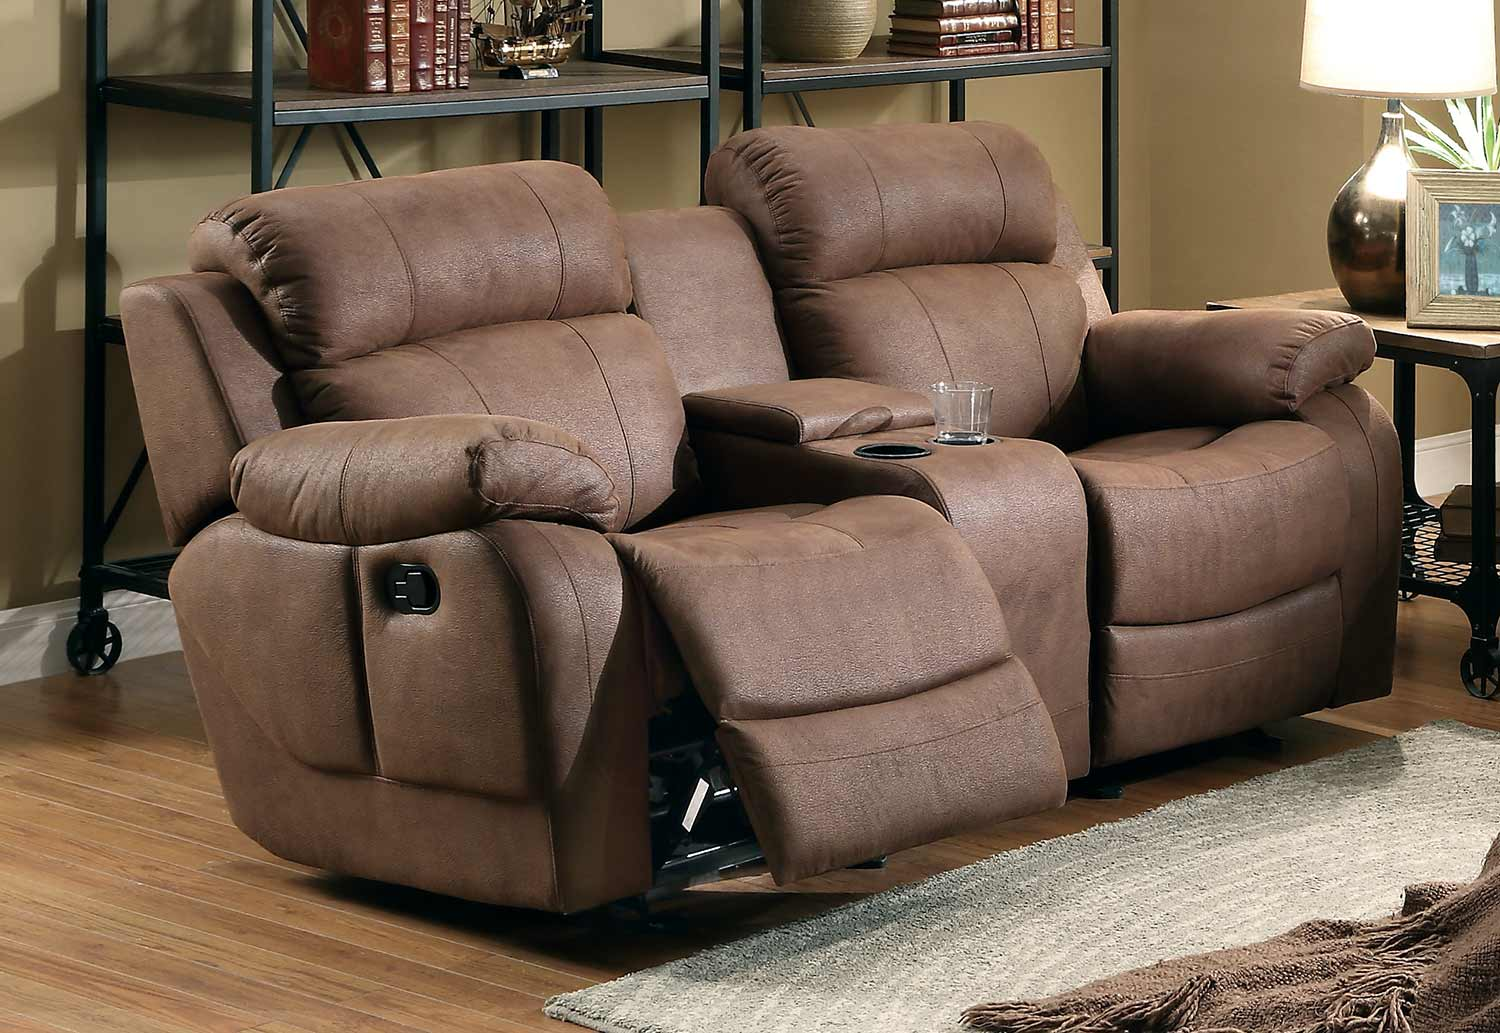 Images of reclining loveseat with center console homelegance marille double glider reclining love seat with center console -  dark jnxpgla